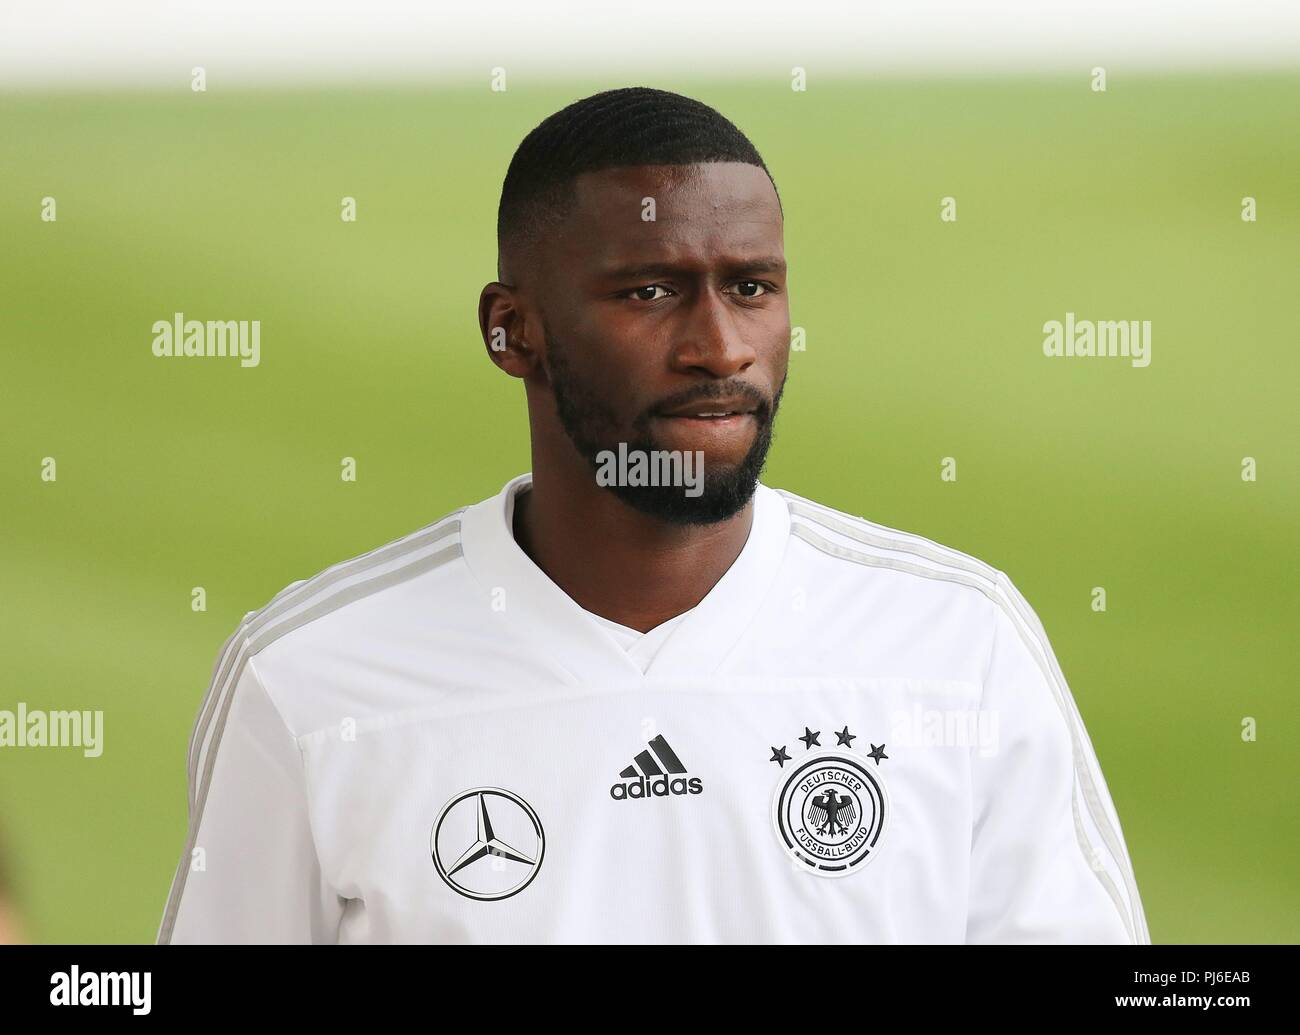 firo: 04.09.2018, Fuvuball, football, national team, training, Antonio RvØdiger, Ruediger, DFB, half figure, Germany | usage worldwide - Stock Image